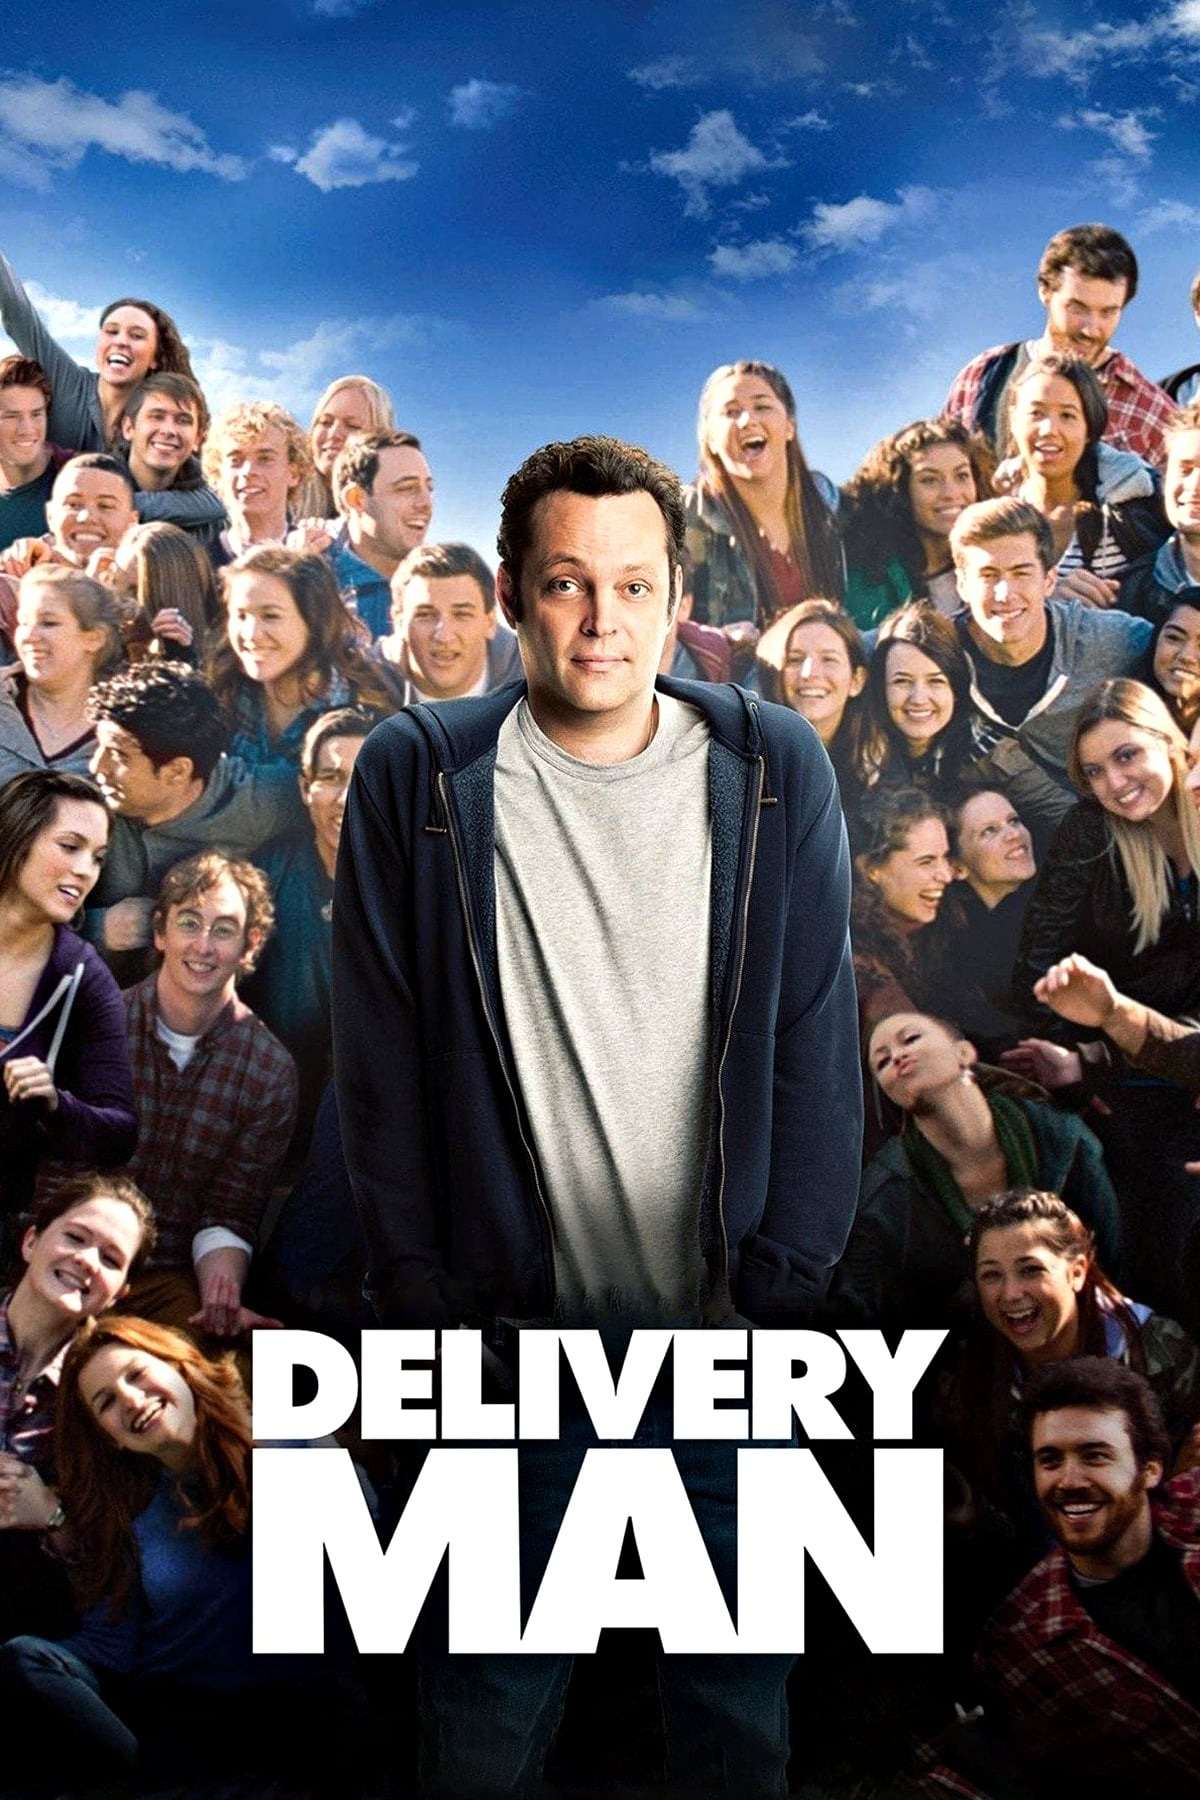 Delivery Man Movie Streaming Online Watch on Sony LIV